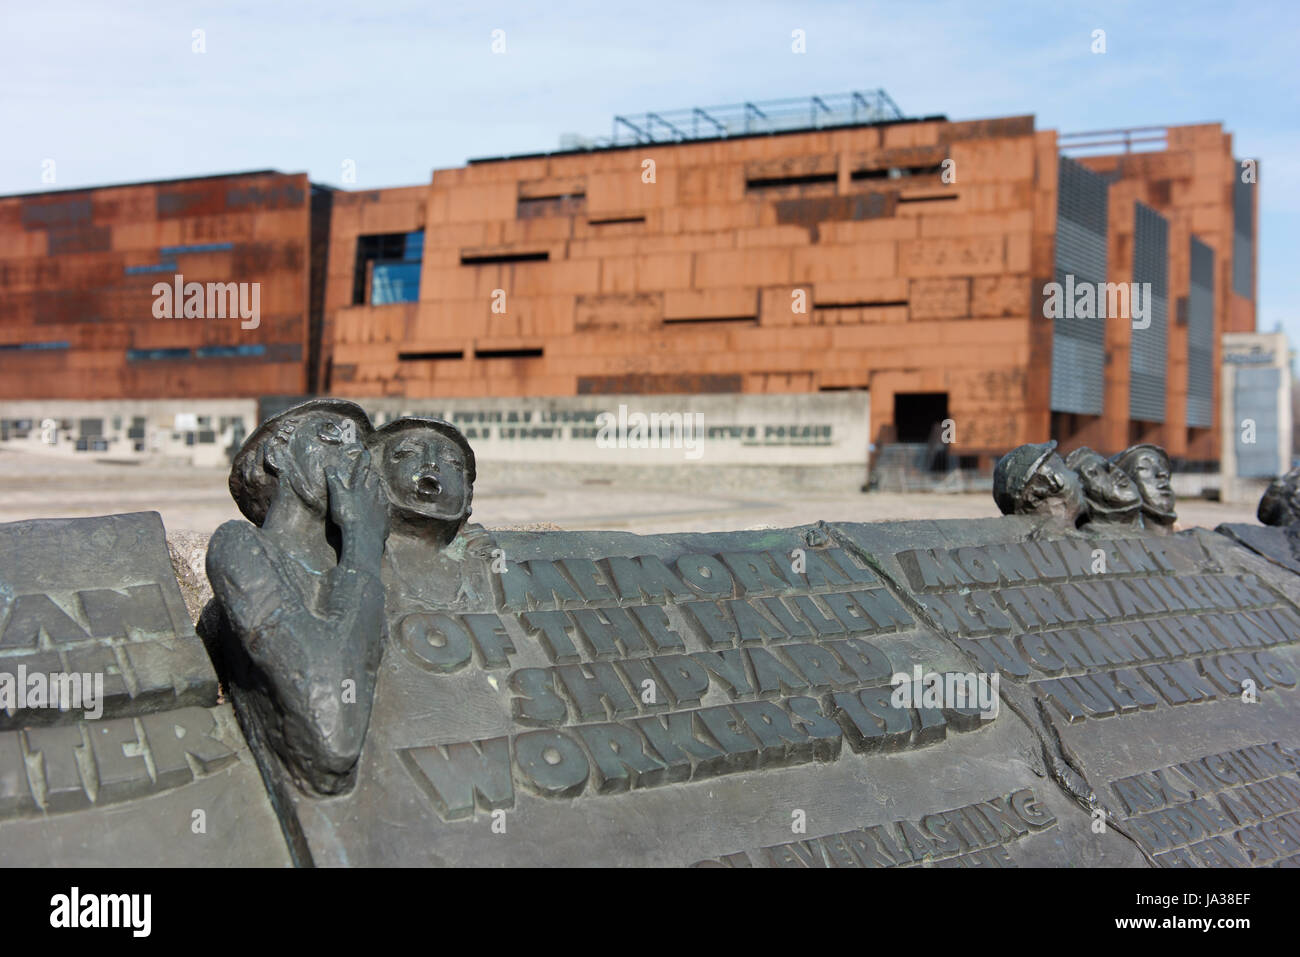 Monument to the Fallen Shipyard Workers of 1970 is to those who lost their lives during the Coastal Cities Events. - Stock Image